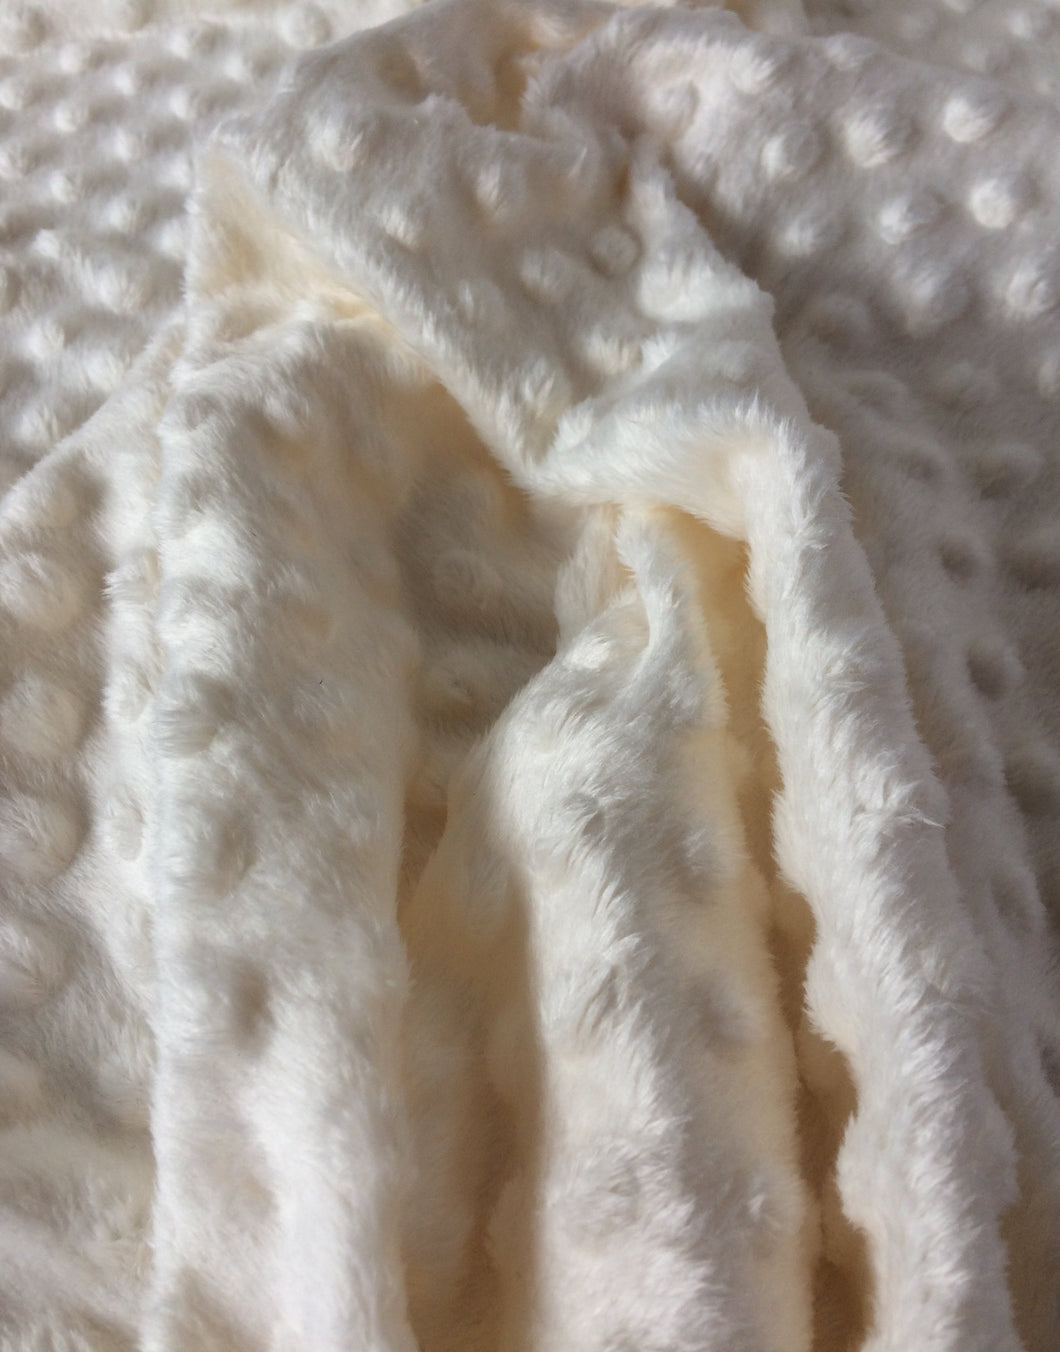 Ivory / Cream Dimple Fleece Fabric,  Popcorn Supersoft Fleece.